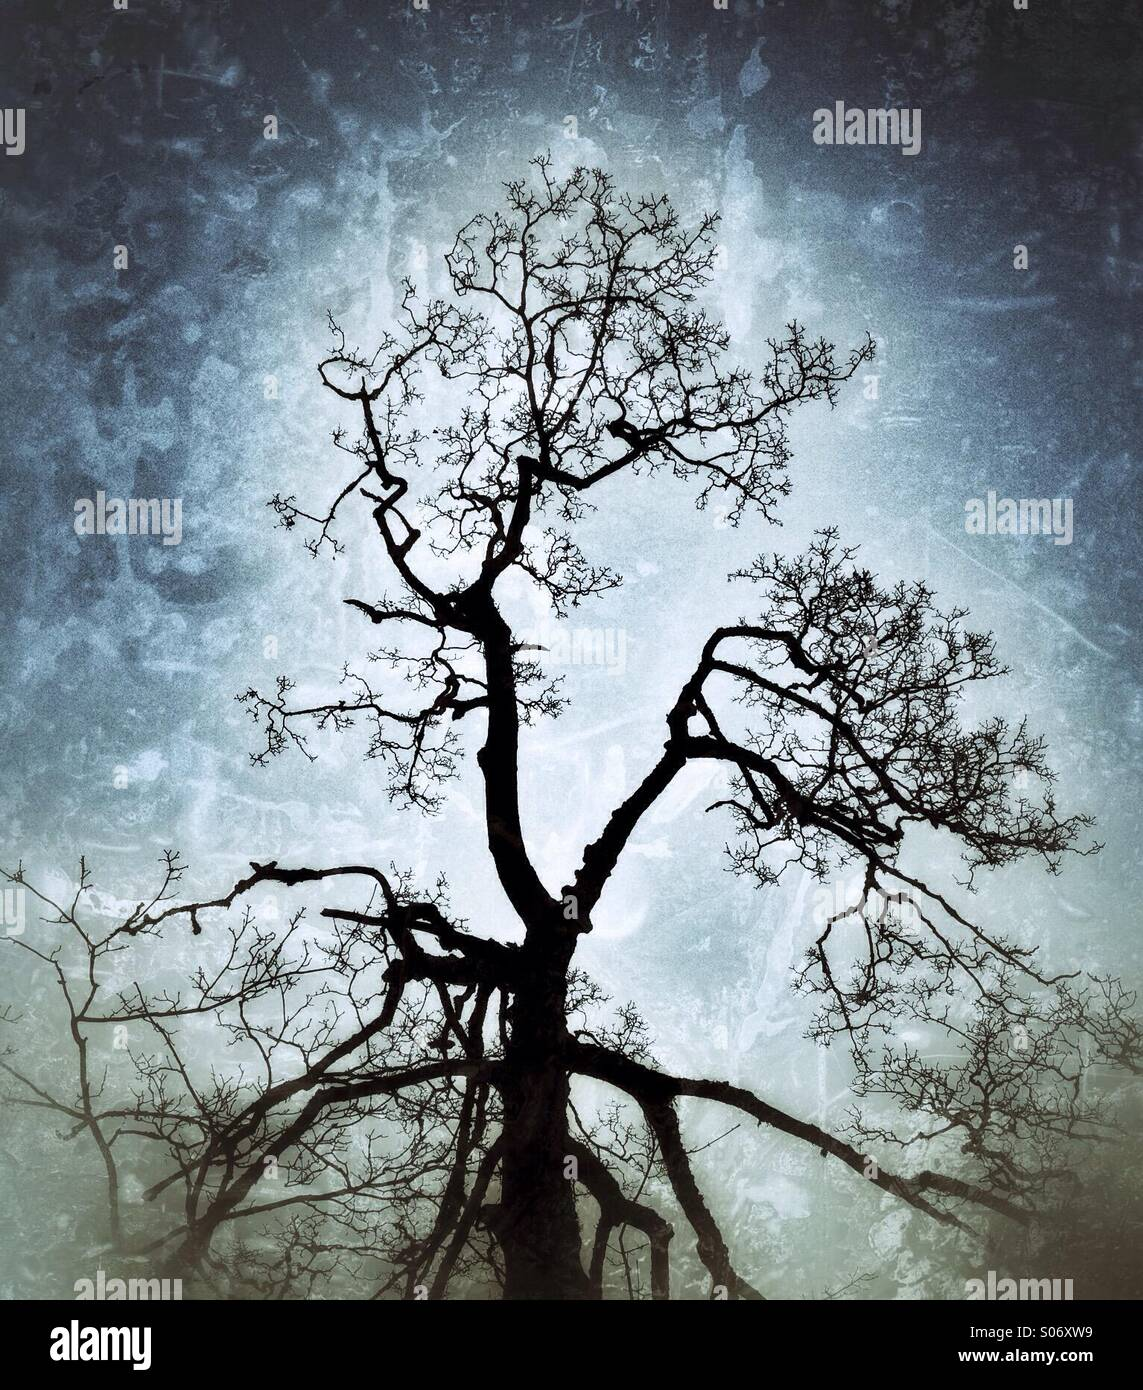 Dead tree against a textured sky - Stock Image